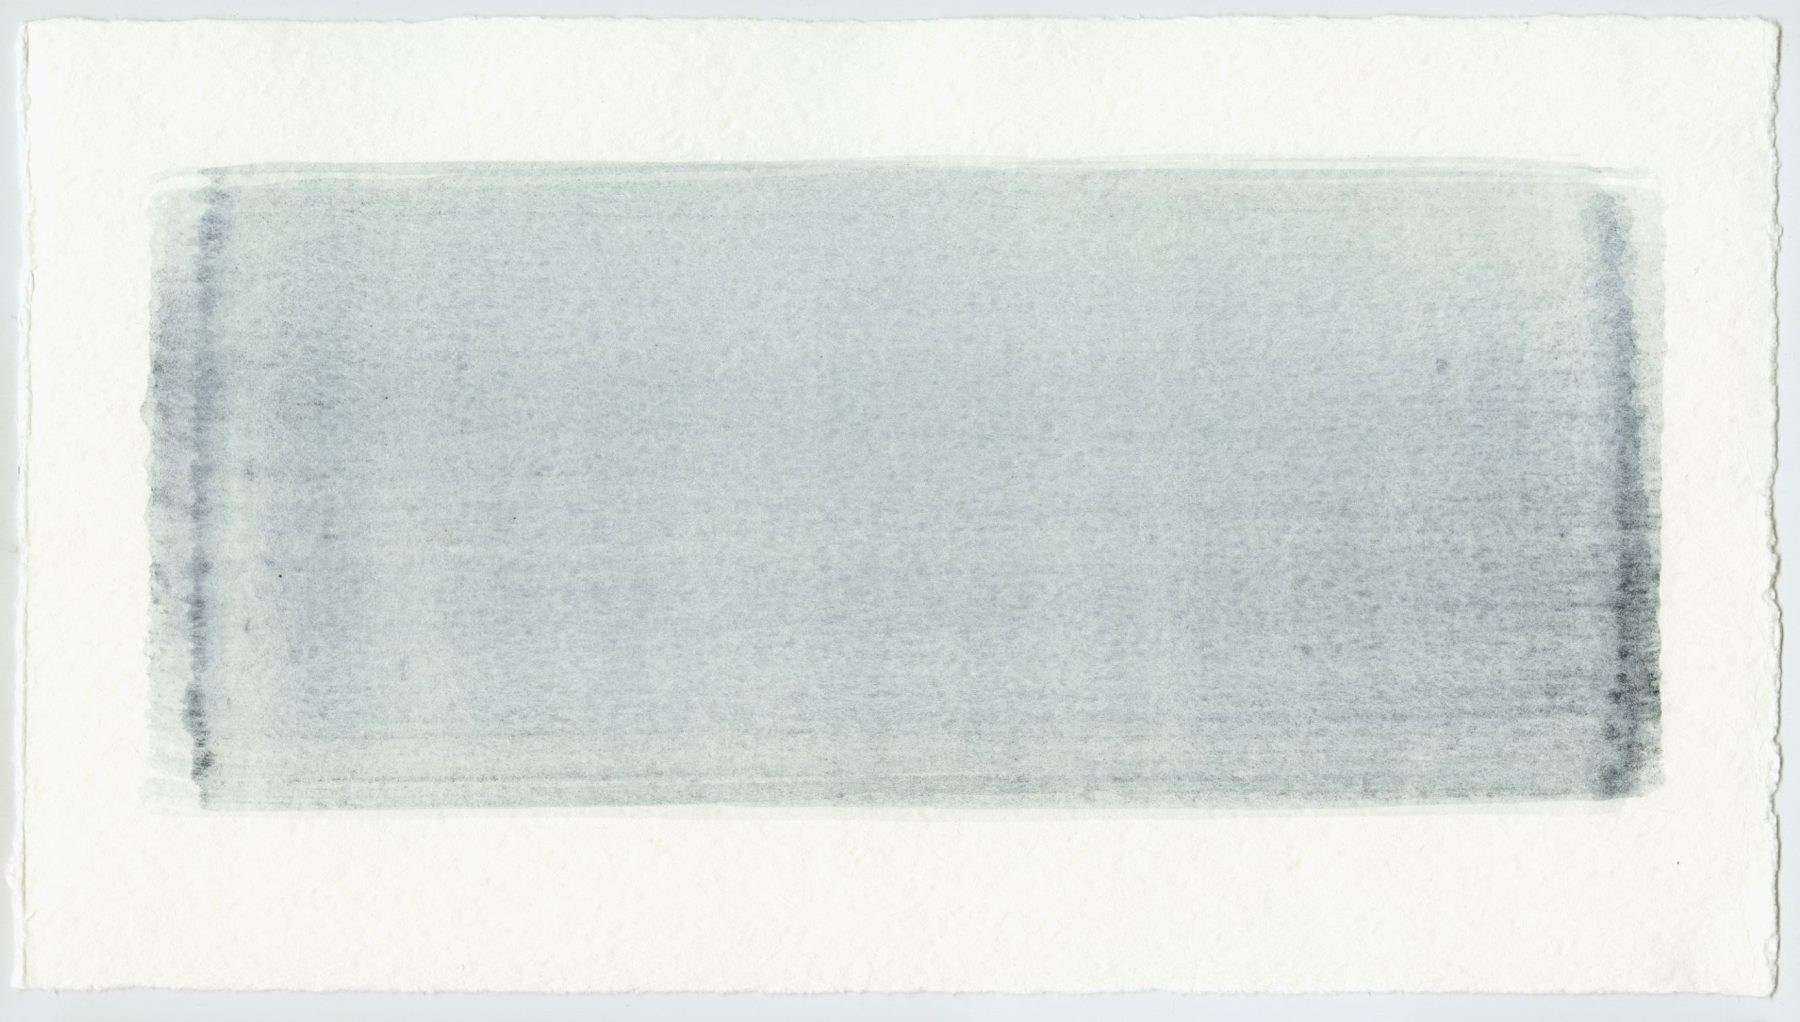 Brush stroke no. 39 - Pigment: vivianiet (from Kremer Pigmente)